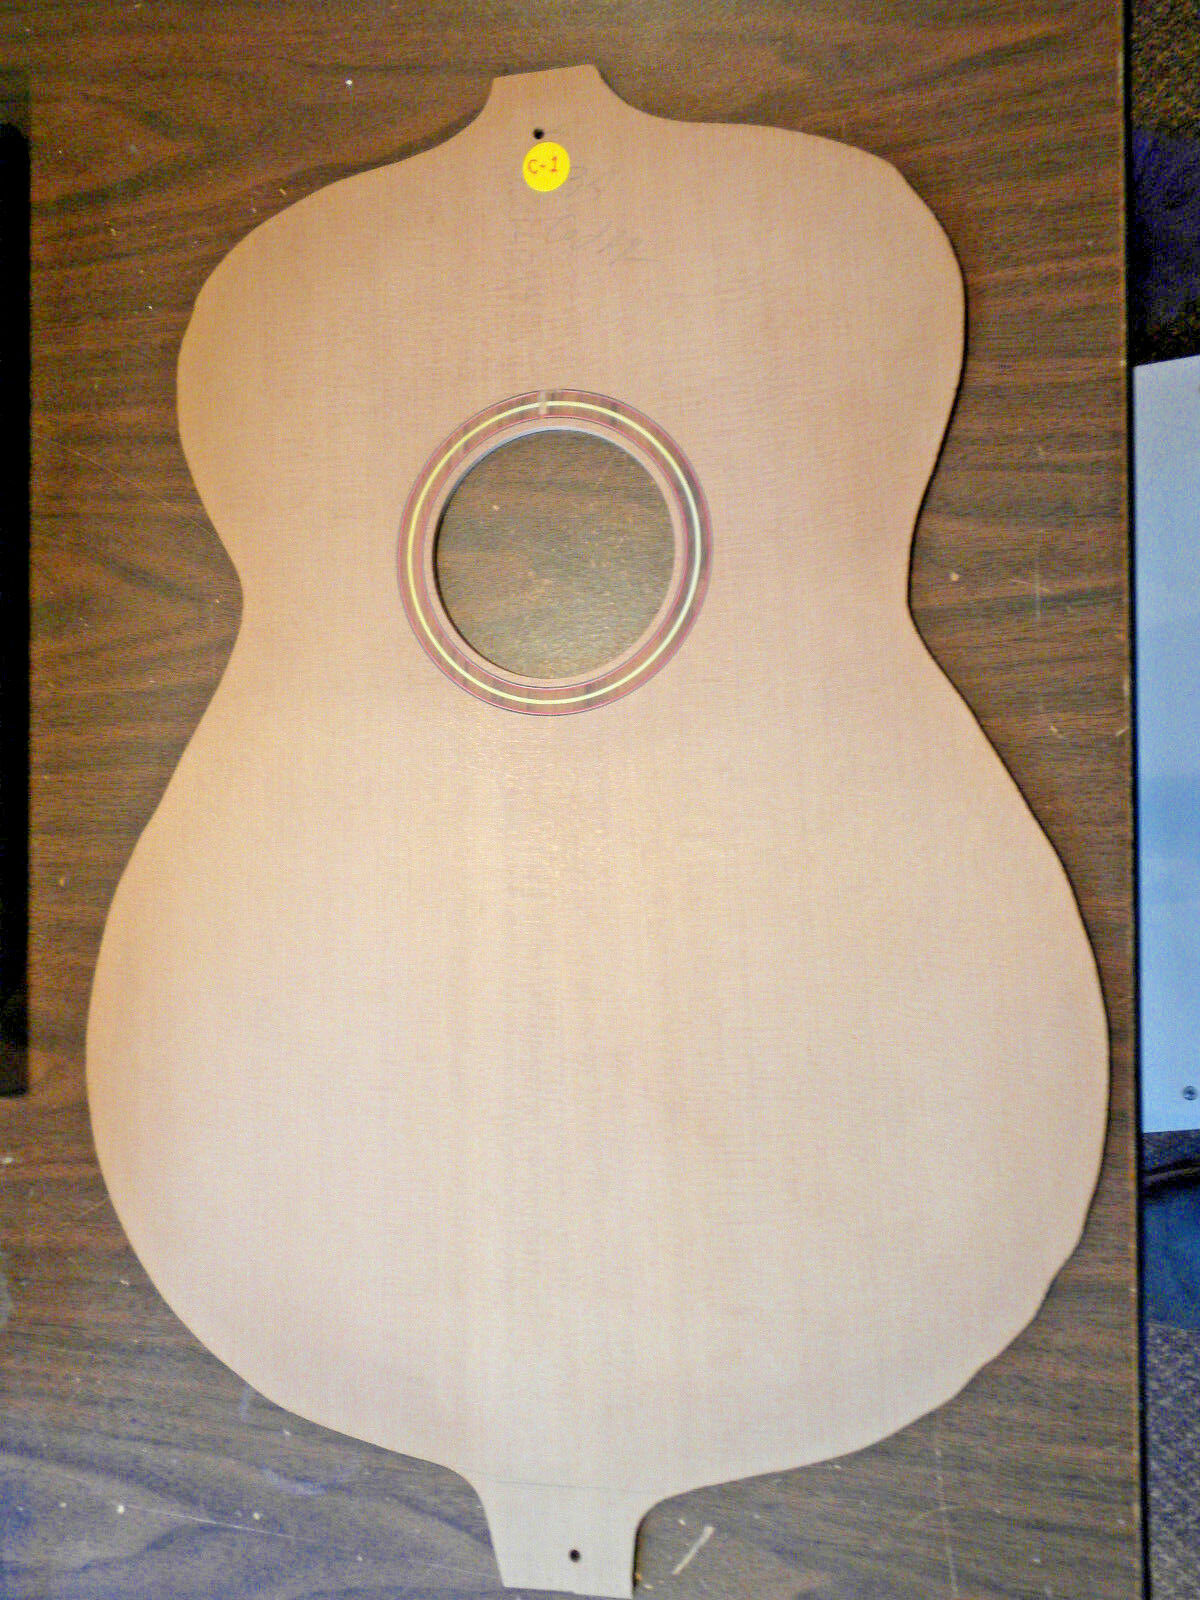 SALE  TACOMA GUILD Guitar Luthier Tonewood AAA CEDAR Top with Rosette